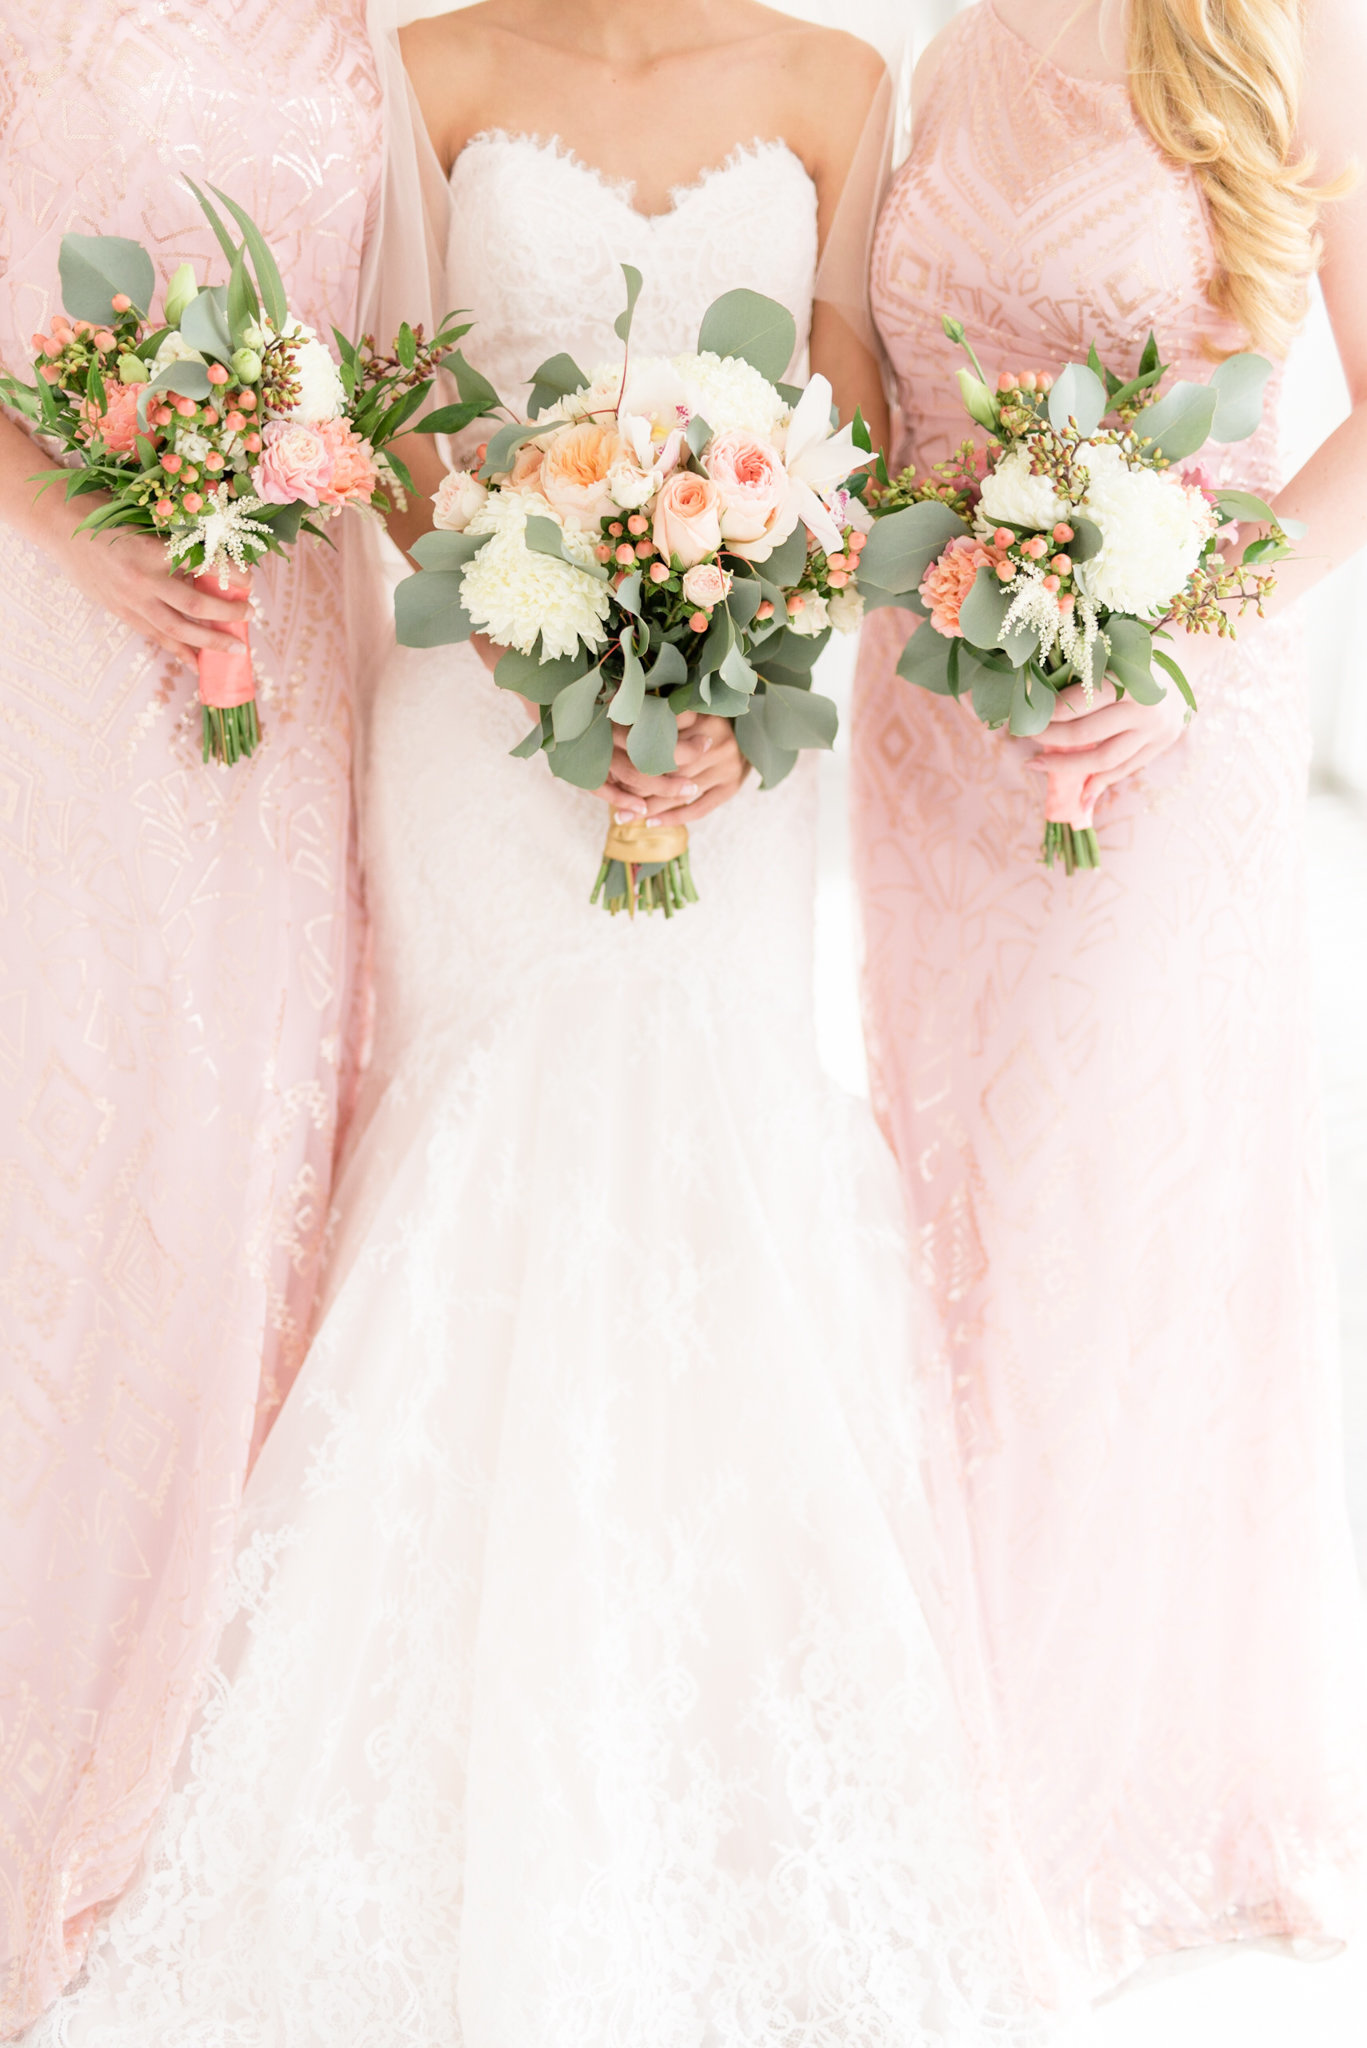 Bride and Bridesmaids hold pink bouquets.